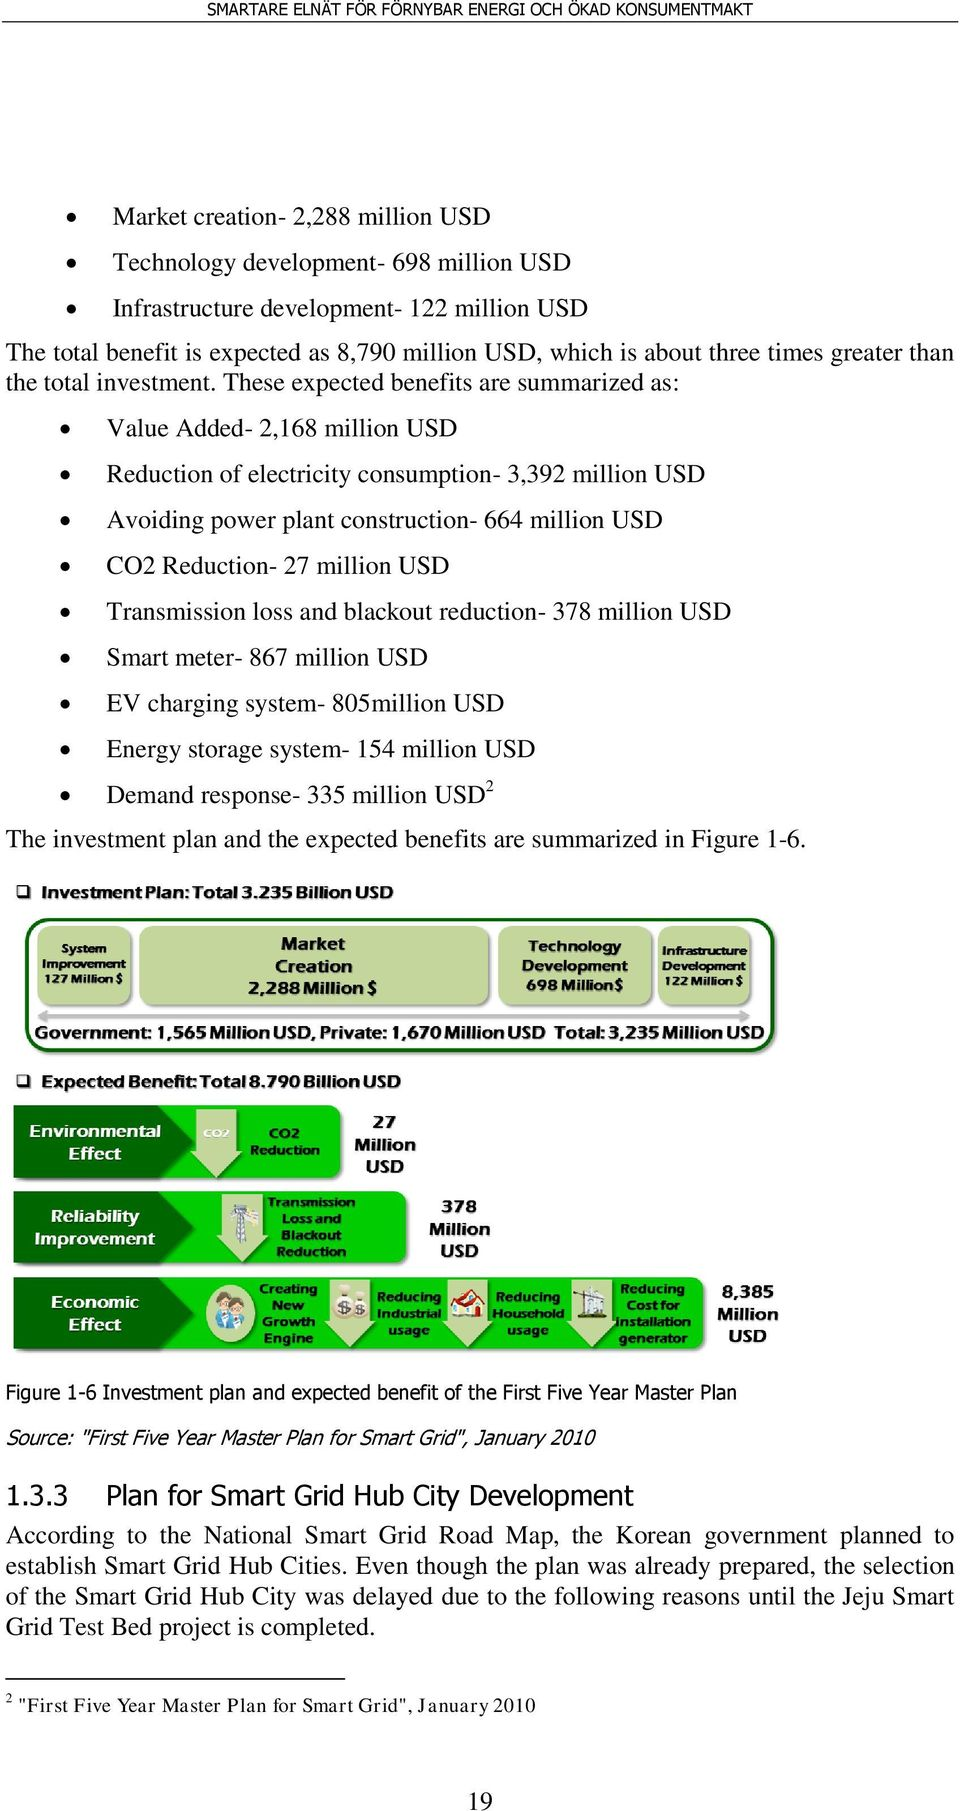 These expected benefits are summarized as: Value Added- 2,168 million USD Reduction of electricity consumption- 3,392 million USD Avoiding power plant construction- 664 million USD CO2 Reduction- 27